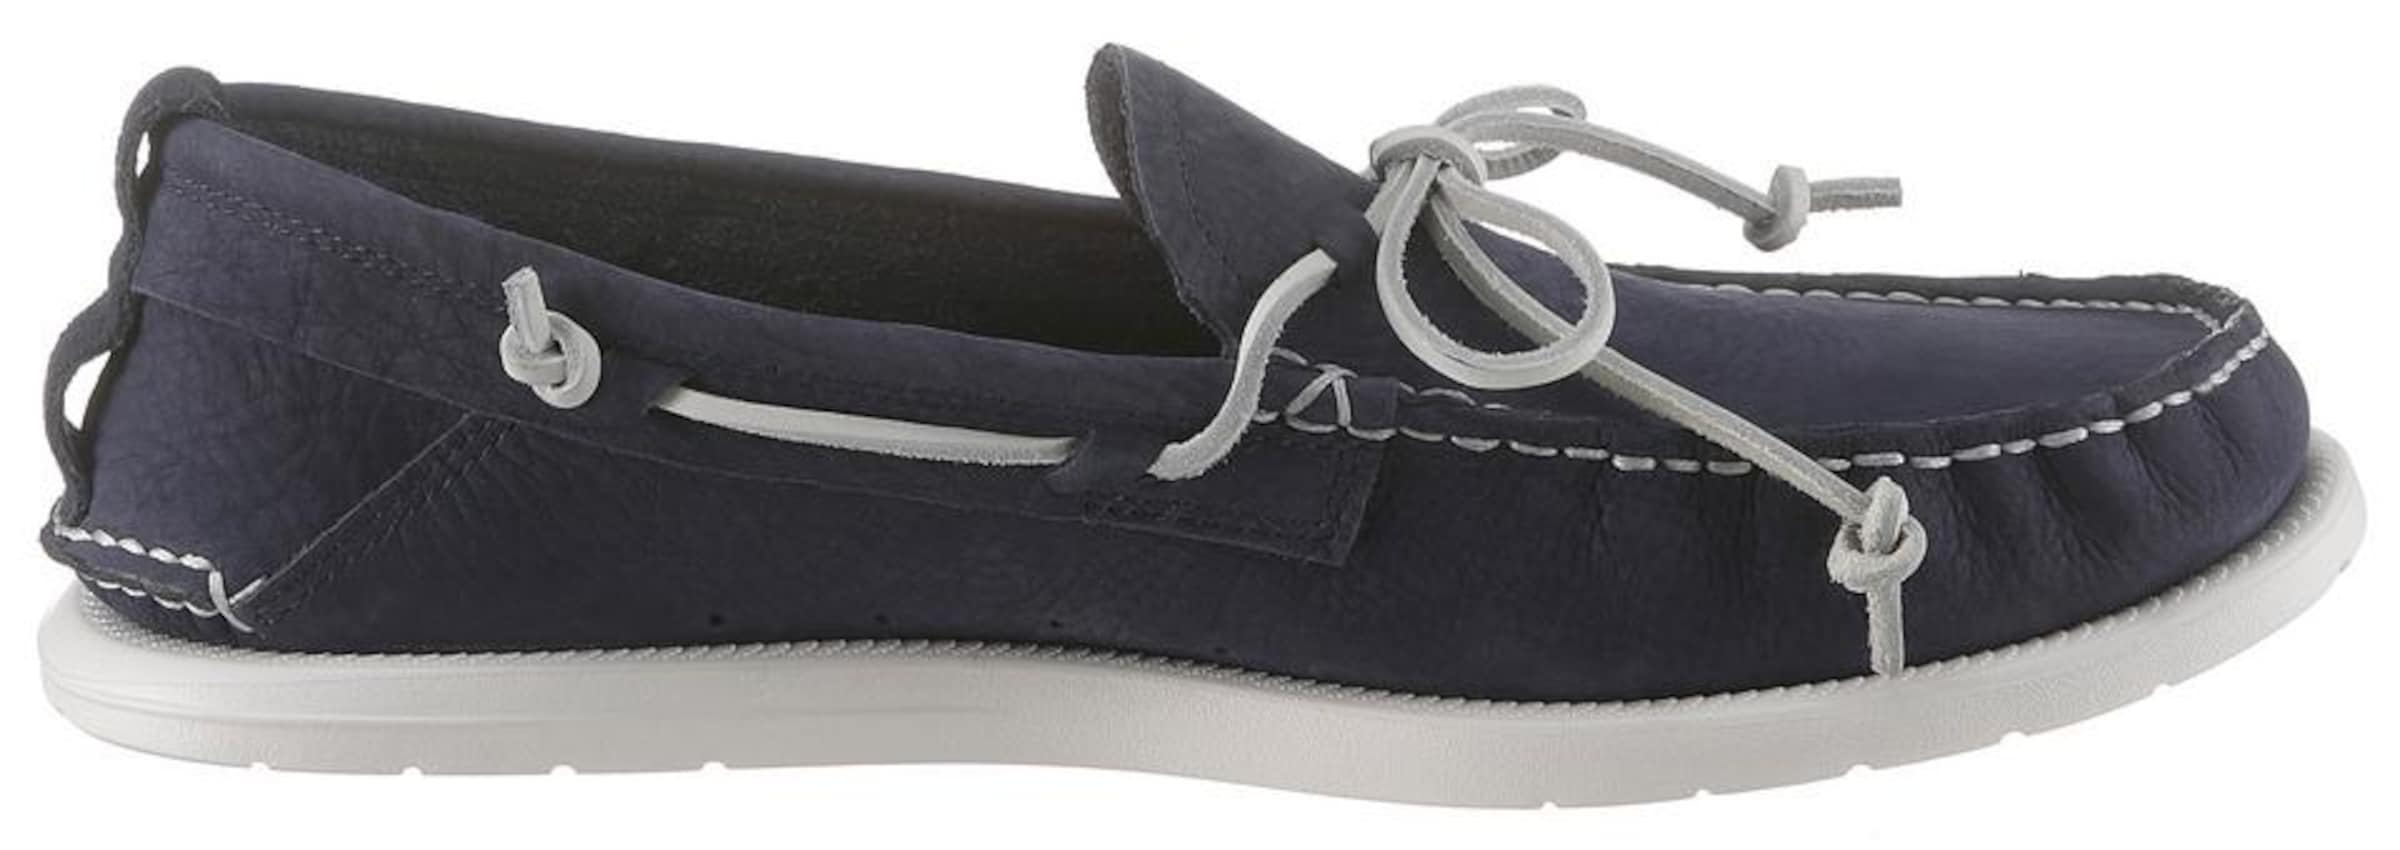 In Ugg 'beach Mokassin Moc' Navy OPiuZXk